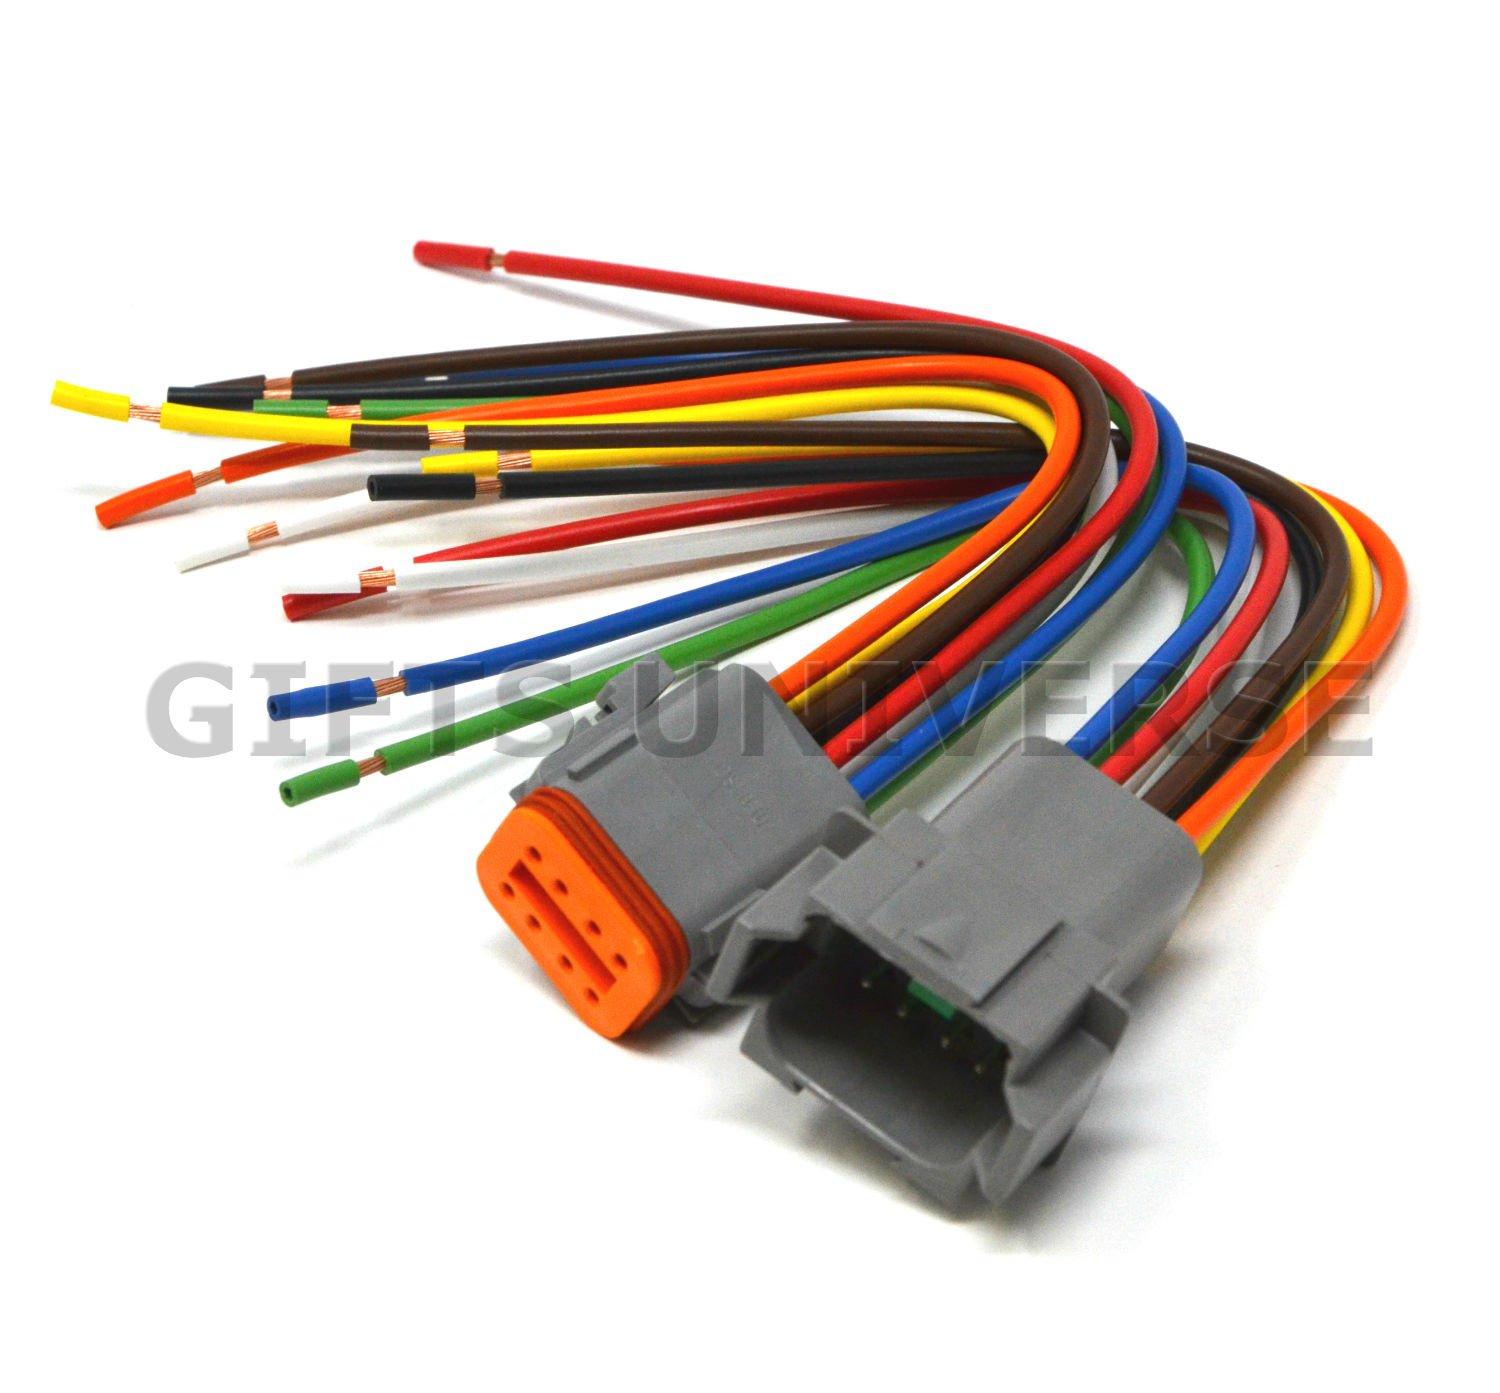 Ddx Bh Wiring Diagram Wire Color on